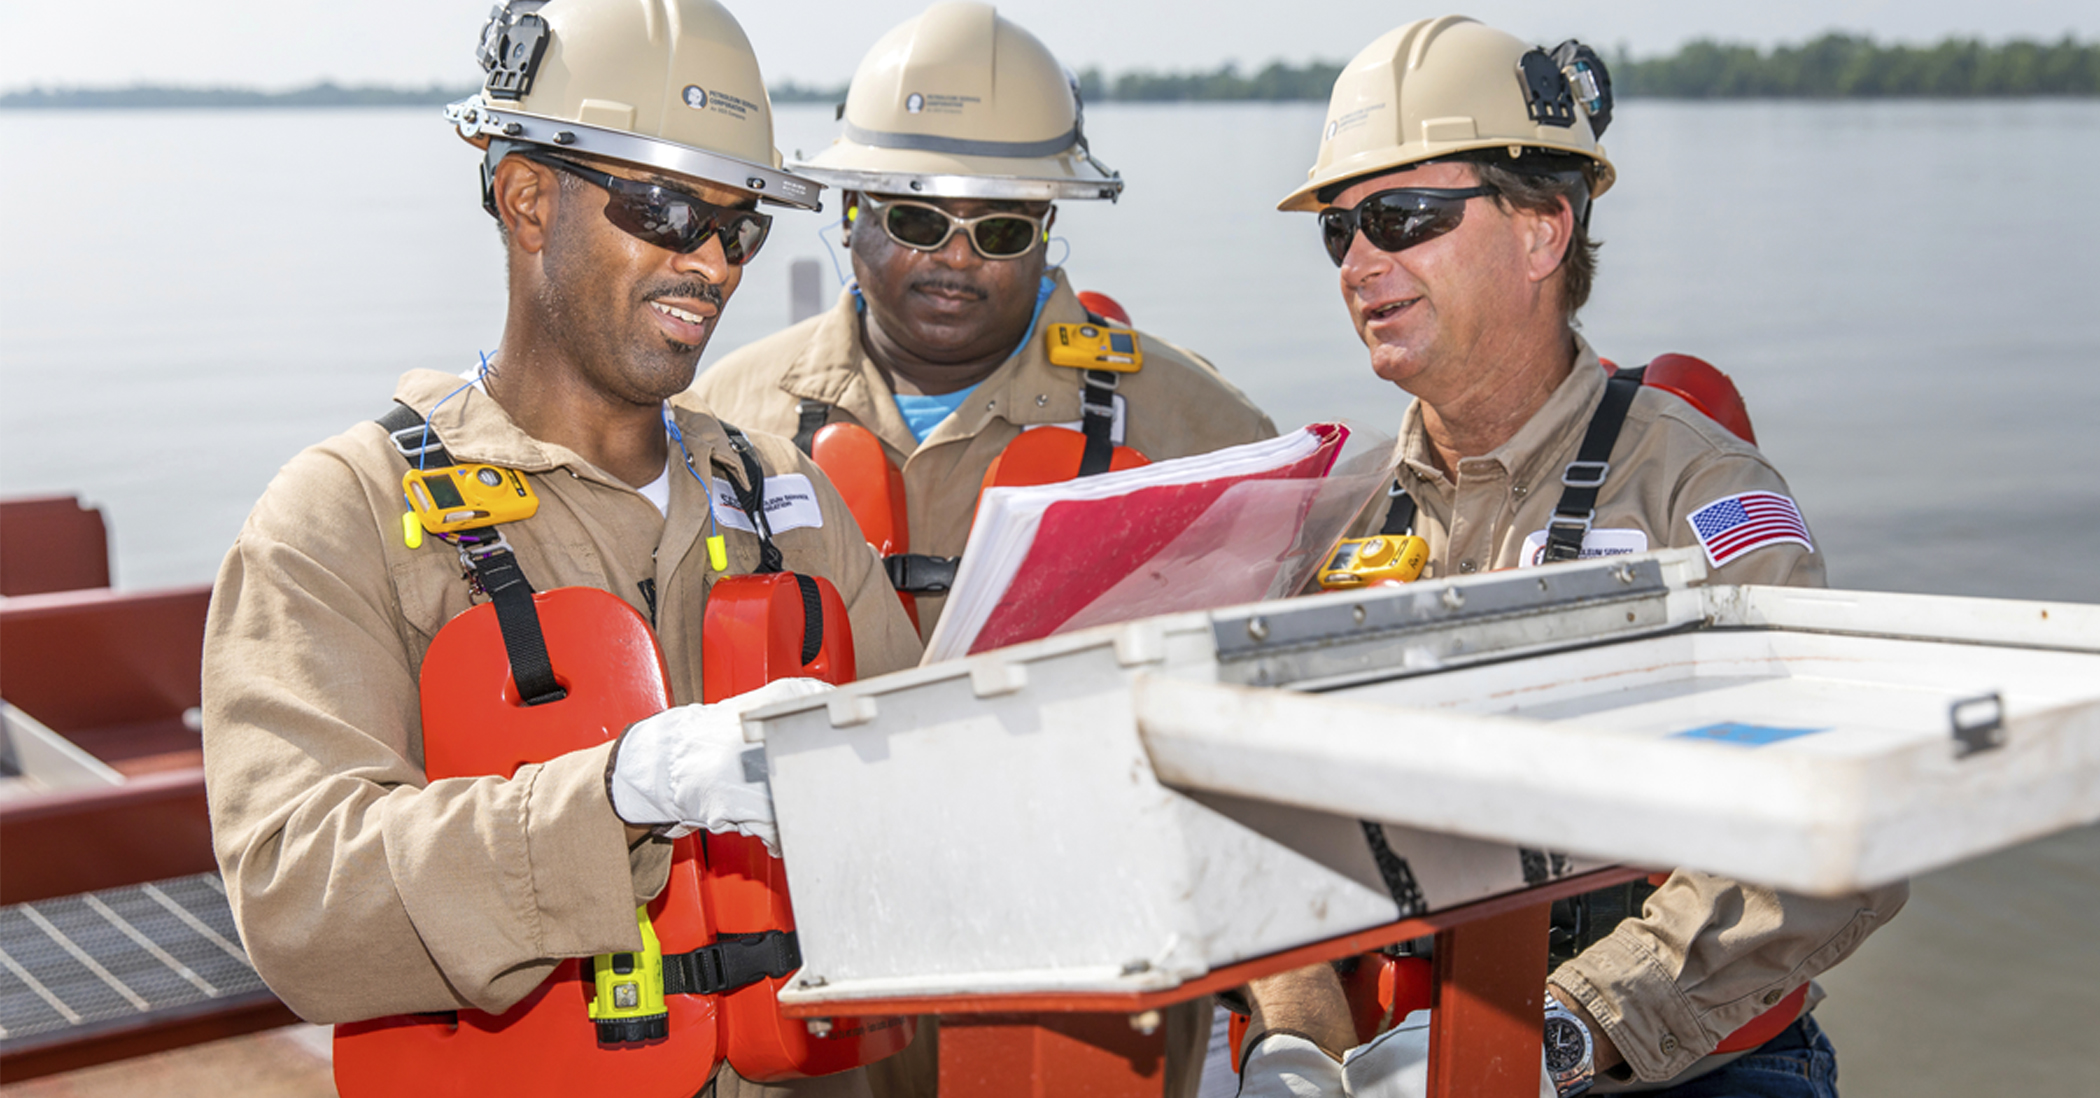 A picture of 3 PSC employees inspecting equipment